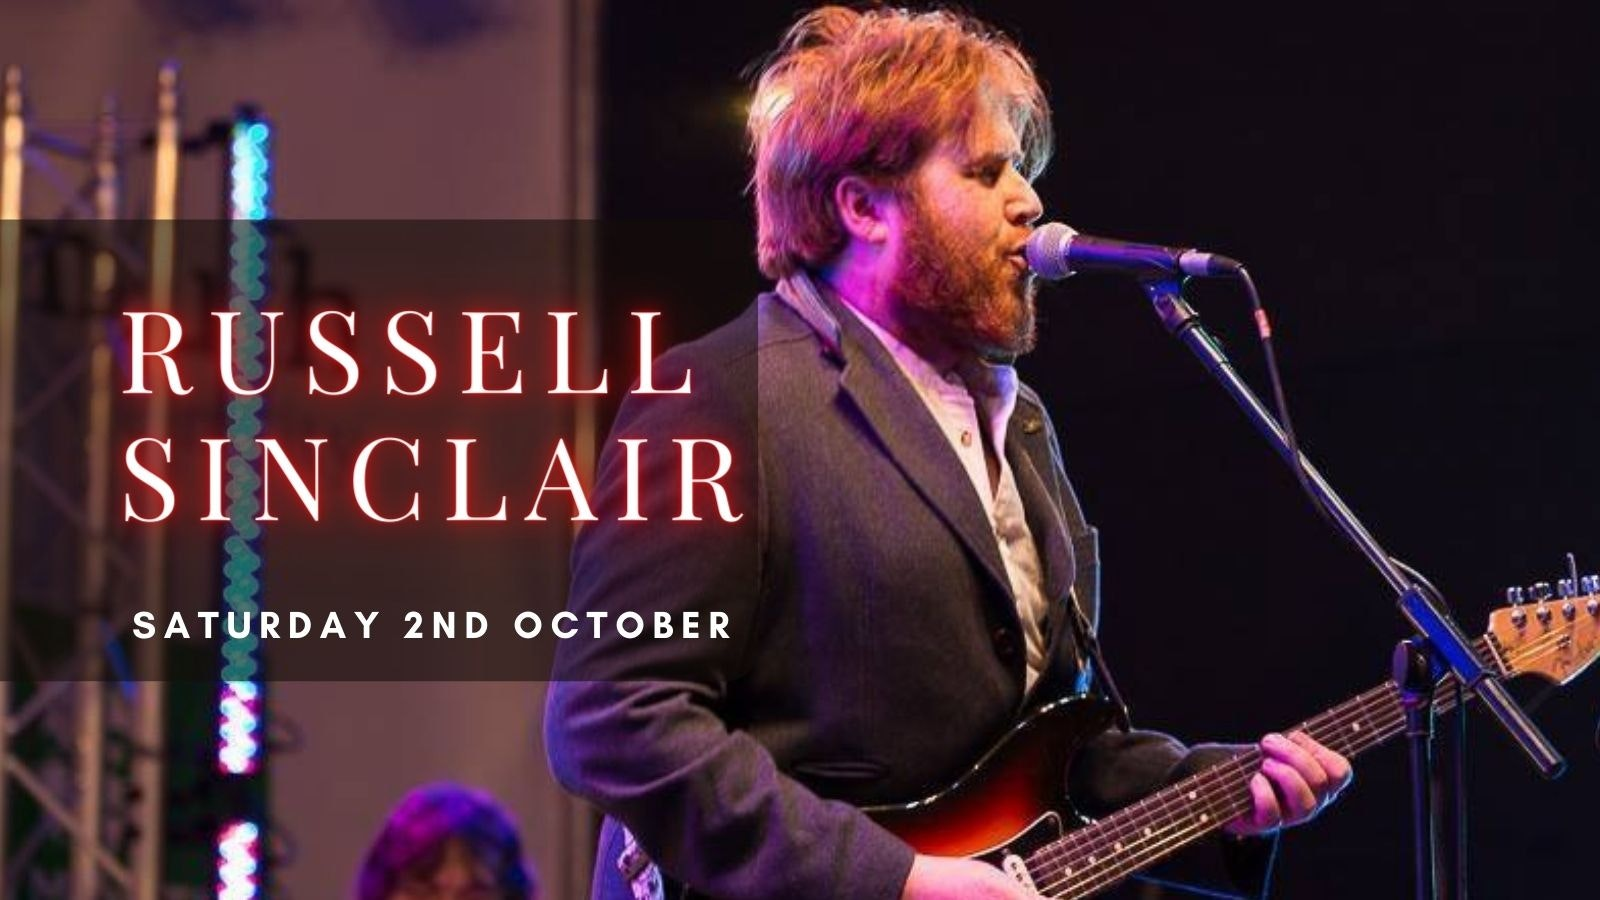 RUSSELL SINCLAIR & THE SMOKIN' LOCOS | Plymouth, Annabel's Cabaret & Discotheque